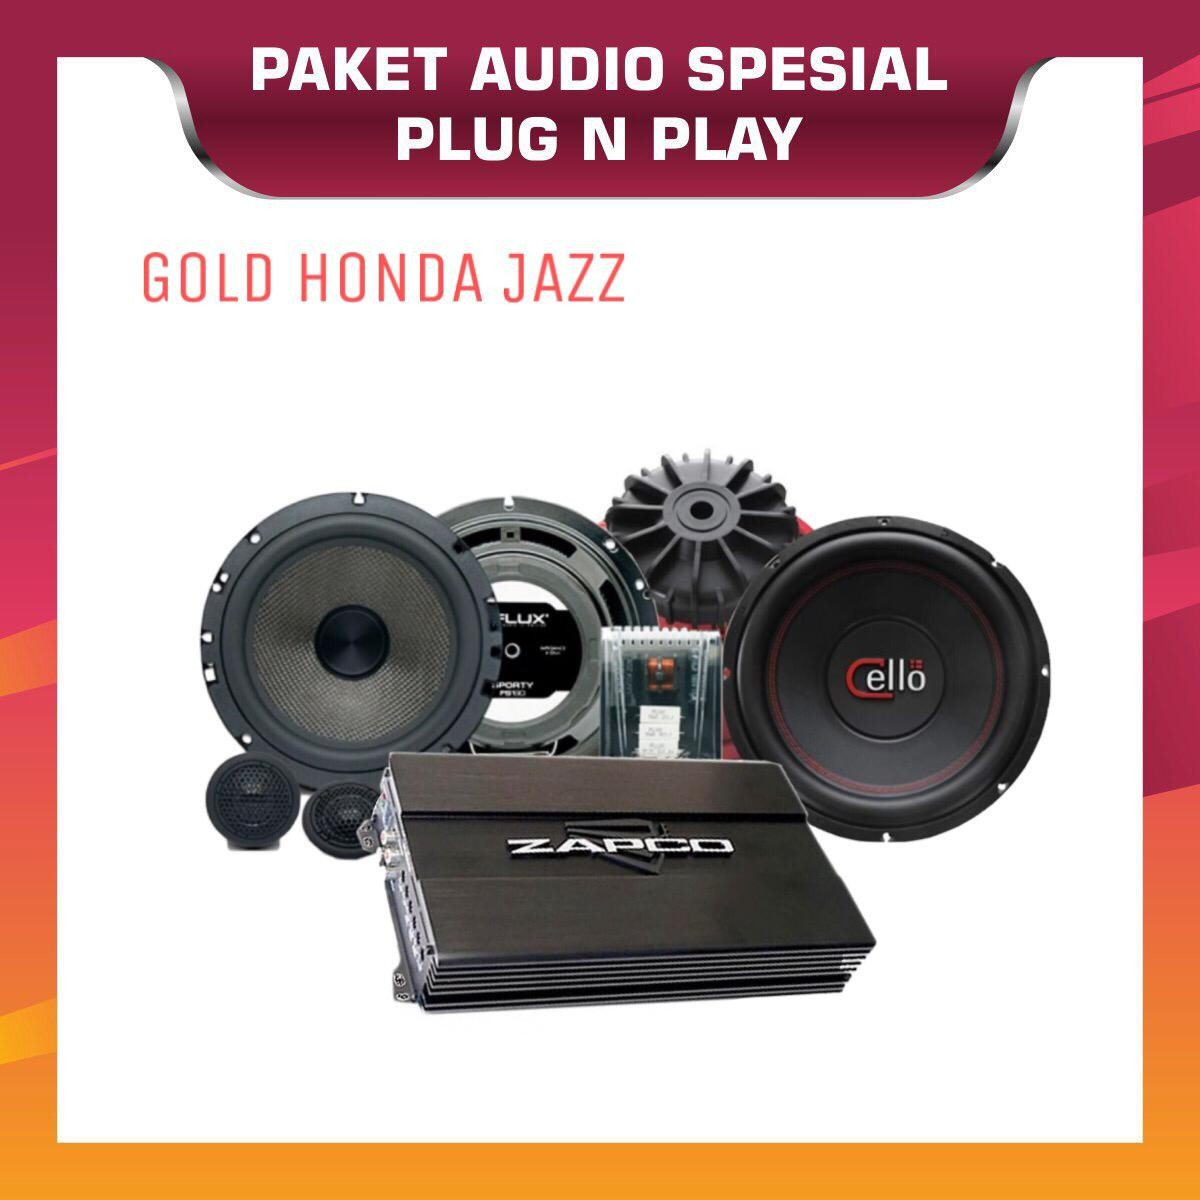 PAKET AUDIO OEM GOLD HONDA JAZZ